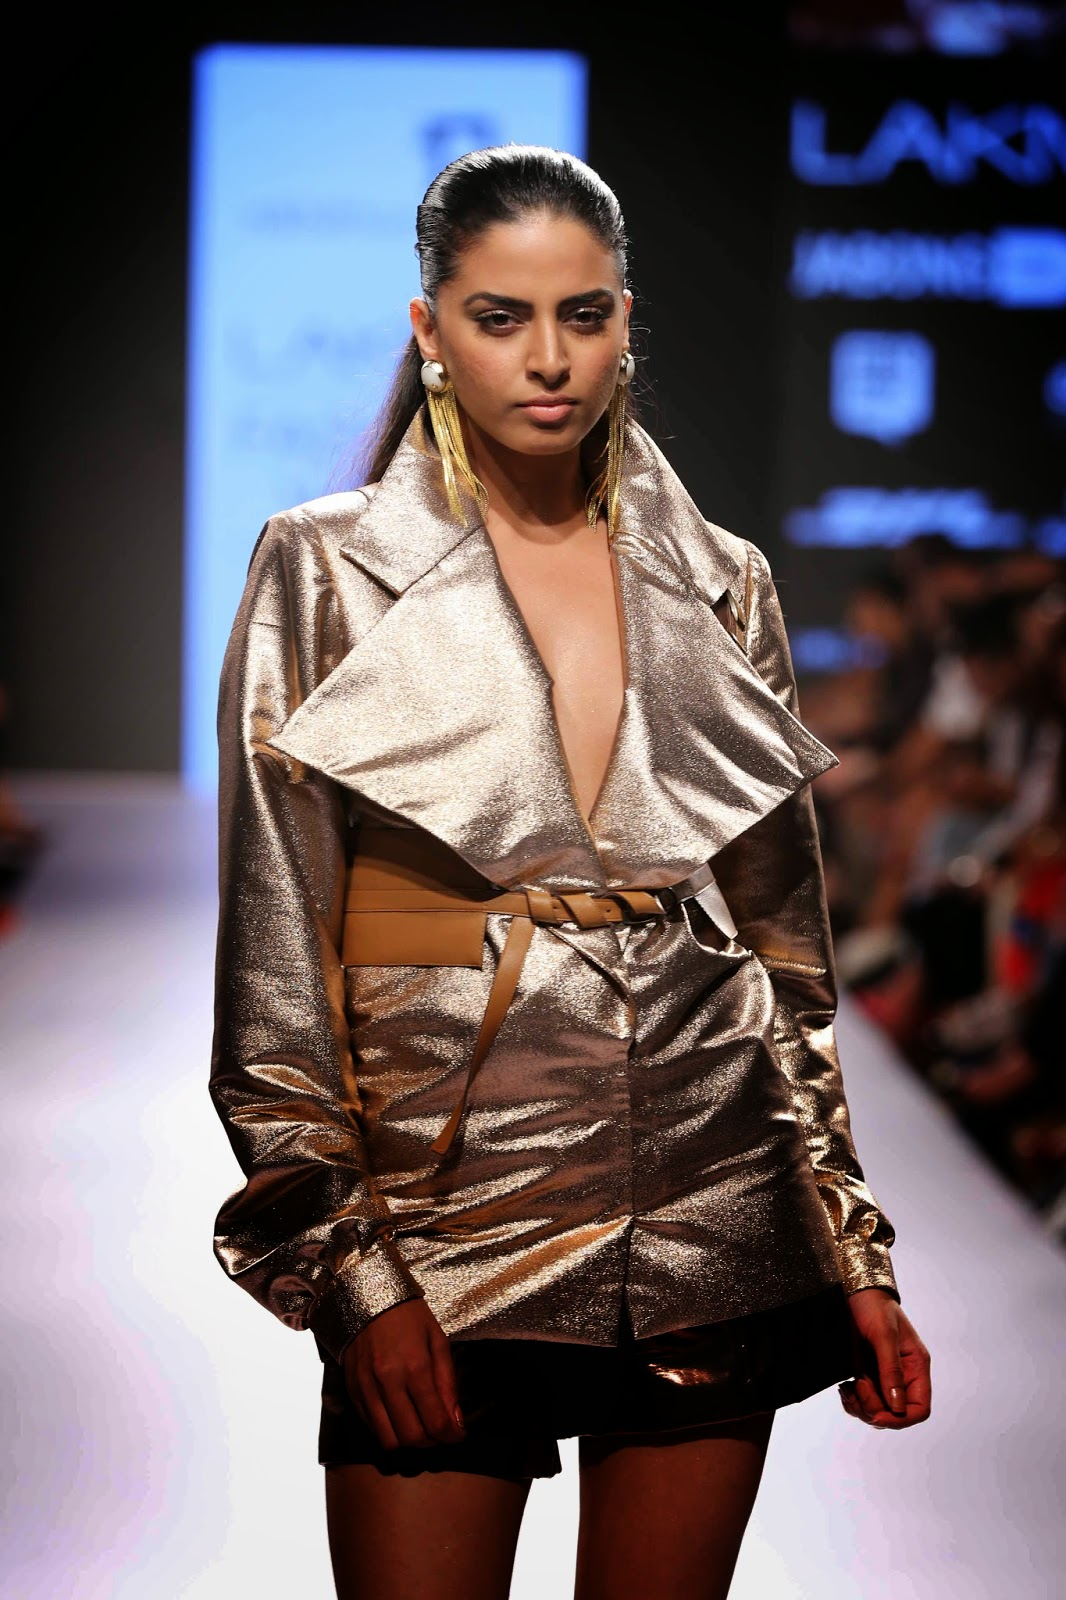 http://aquaintperspective.blogspot.in/,NIKHIL THAMPI